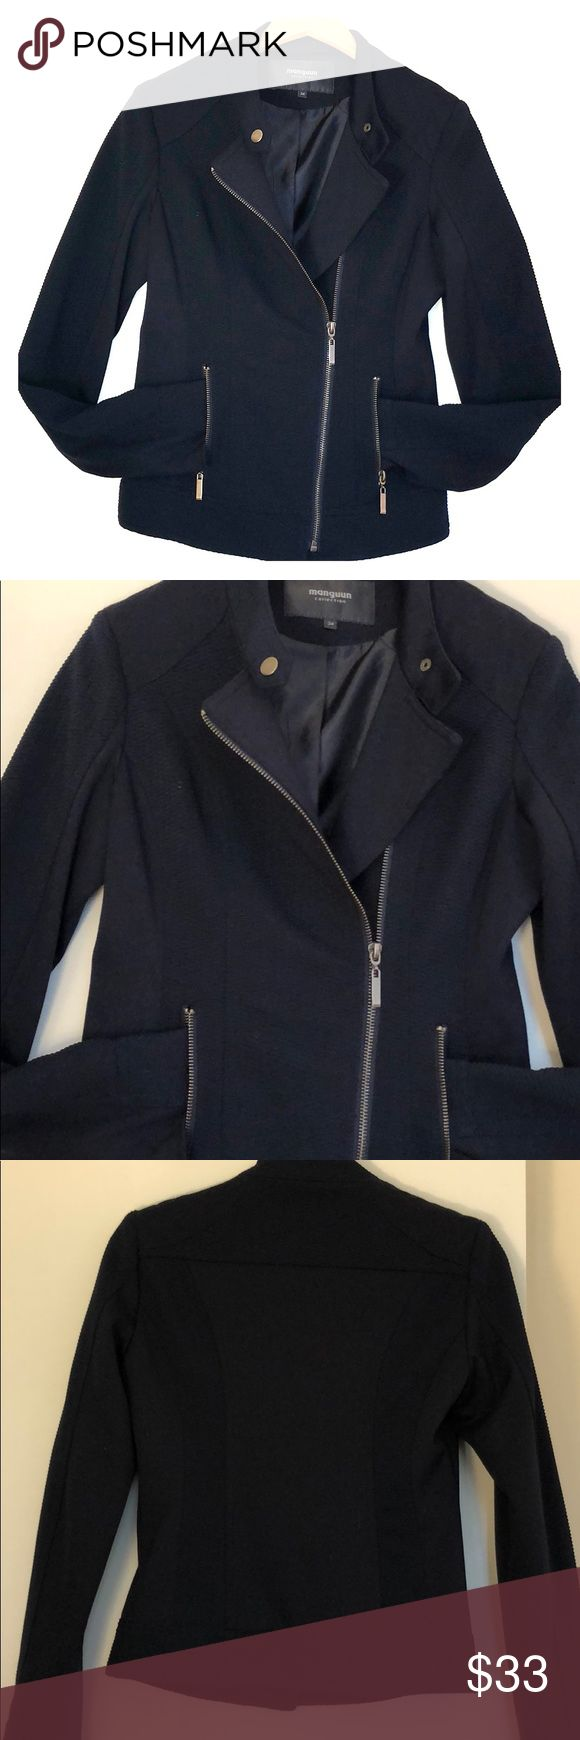 MANGUUN collection moto jacket Like new condition beautiful navy blue with some stretch Moto jacket. manguun Jackets & Coats